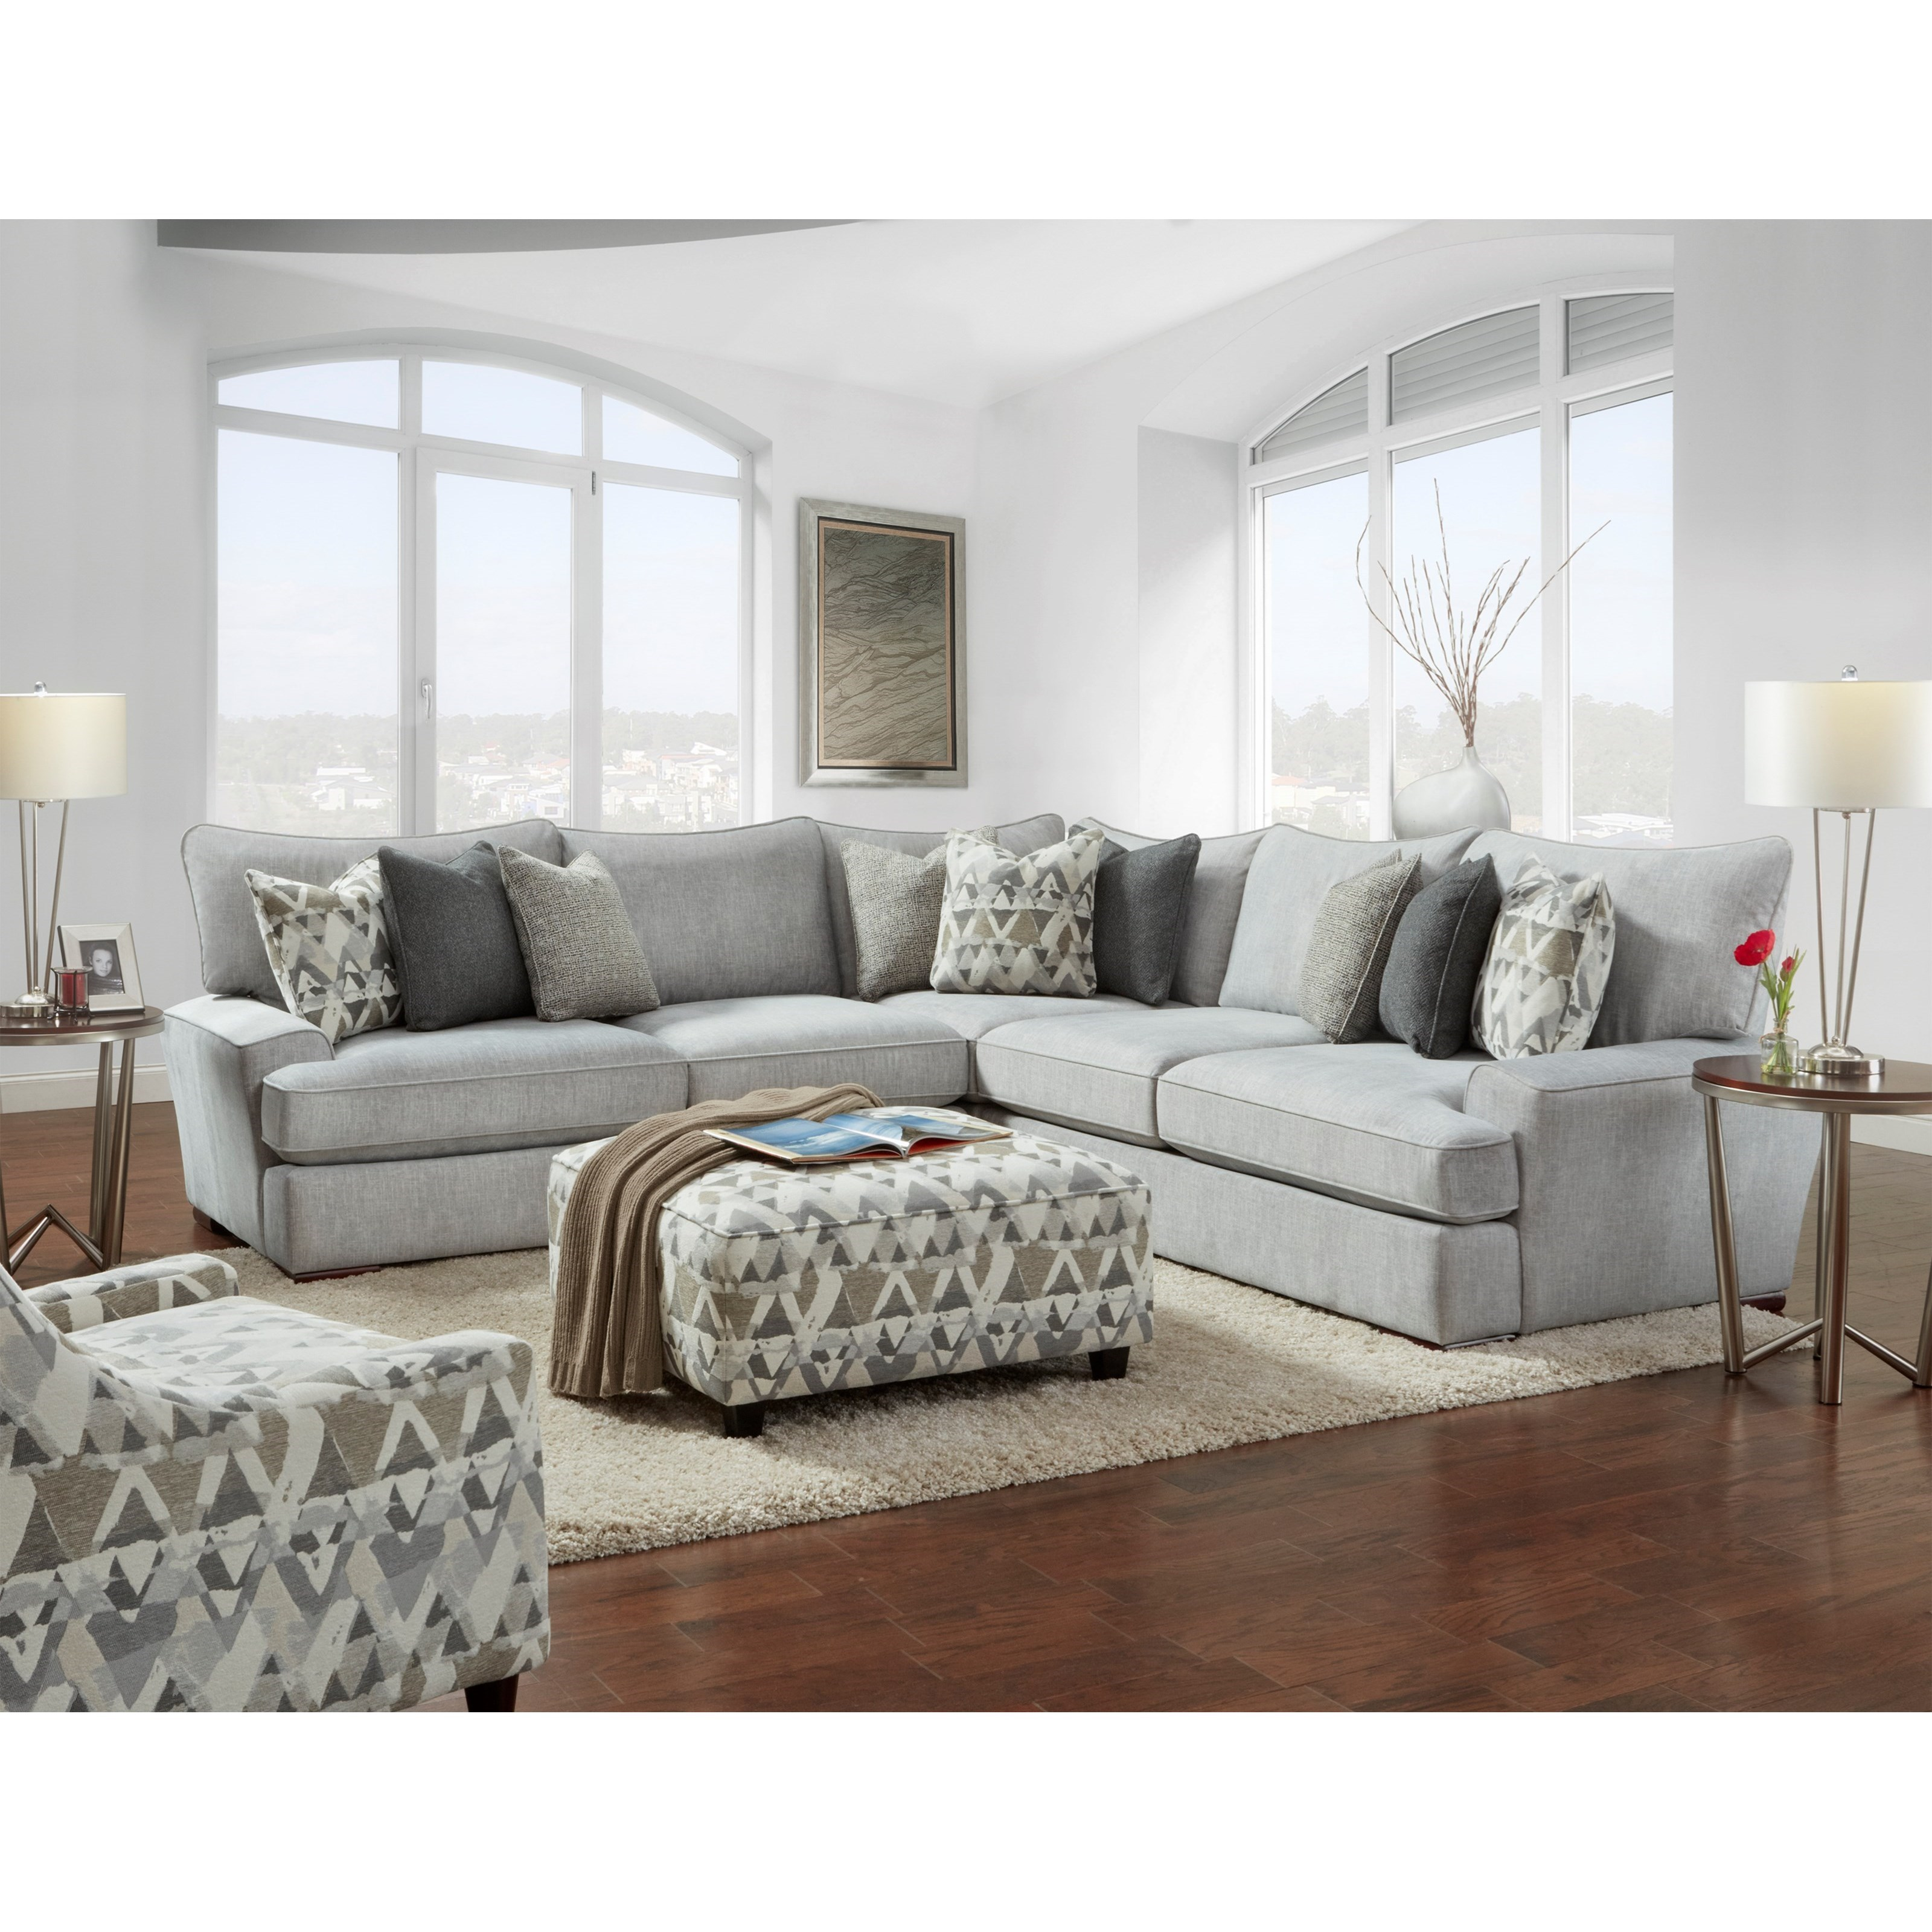 Alton Silver Stationary Living Room Group by VFM Signature at Virginia Furniture Market